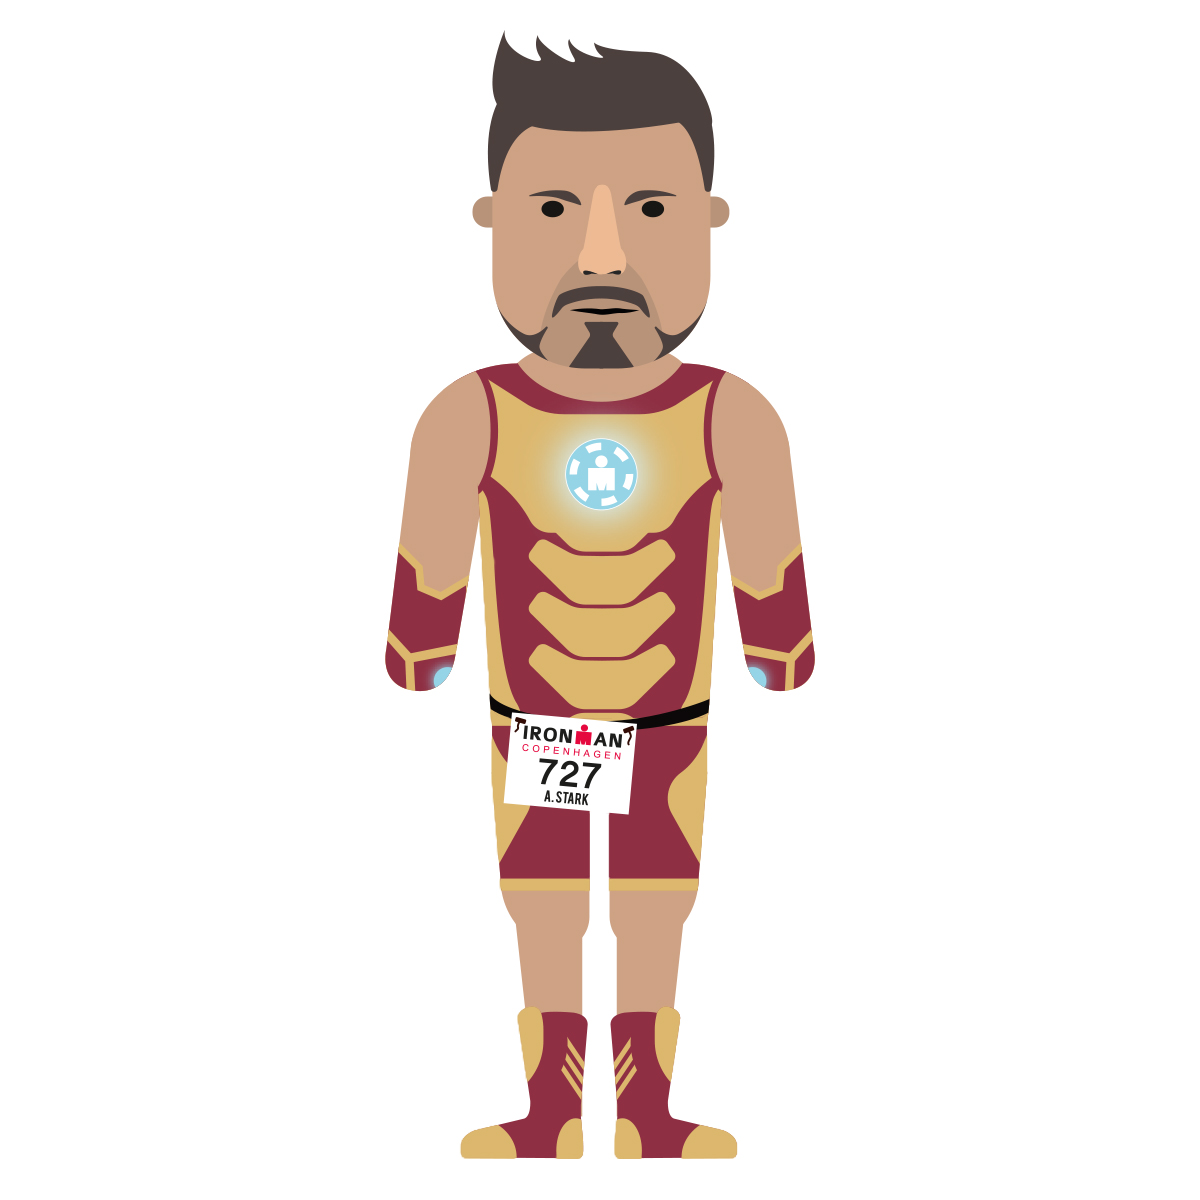 single_flat_design_tony_star_ironman